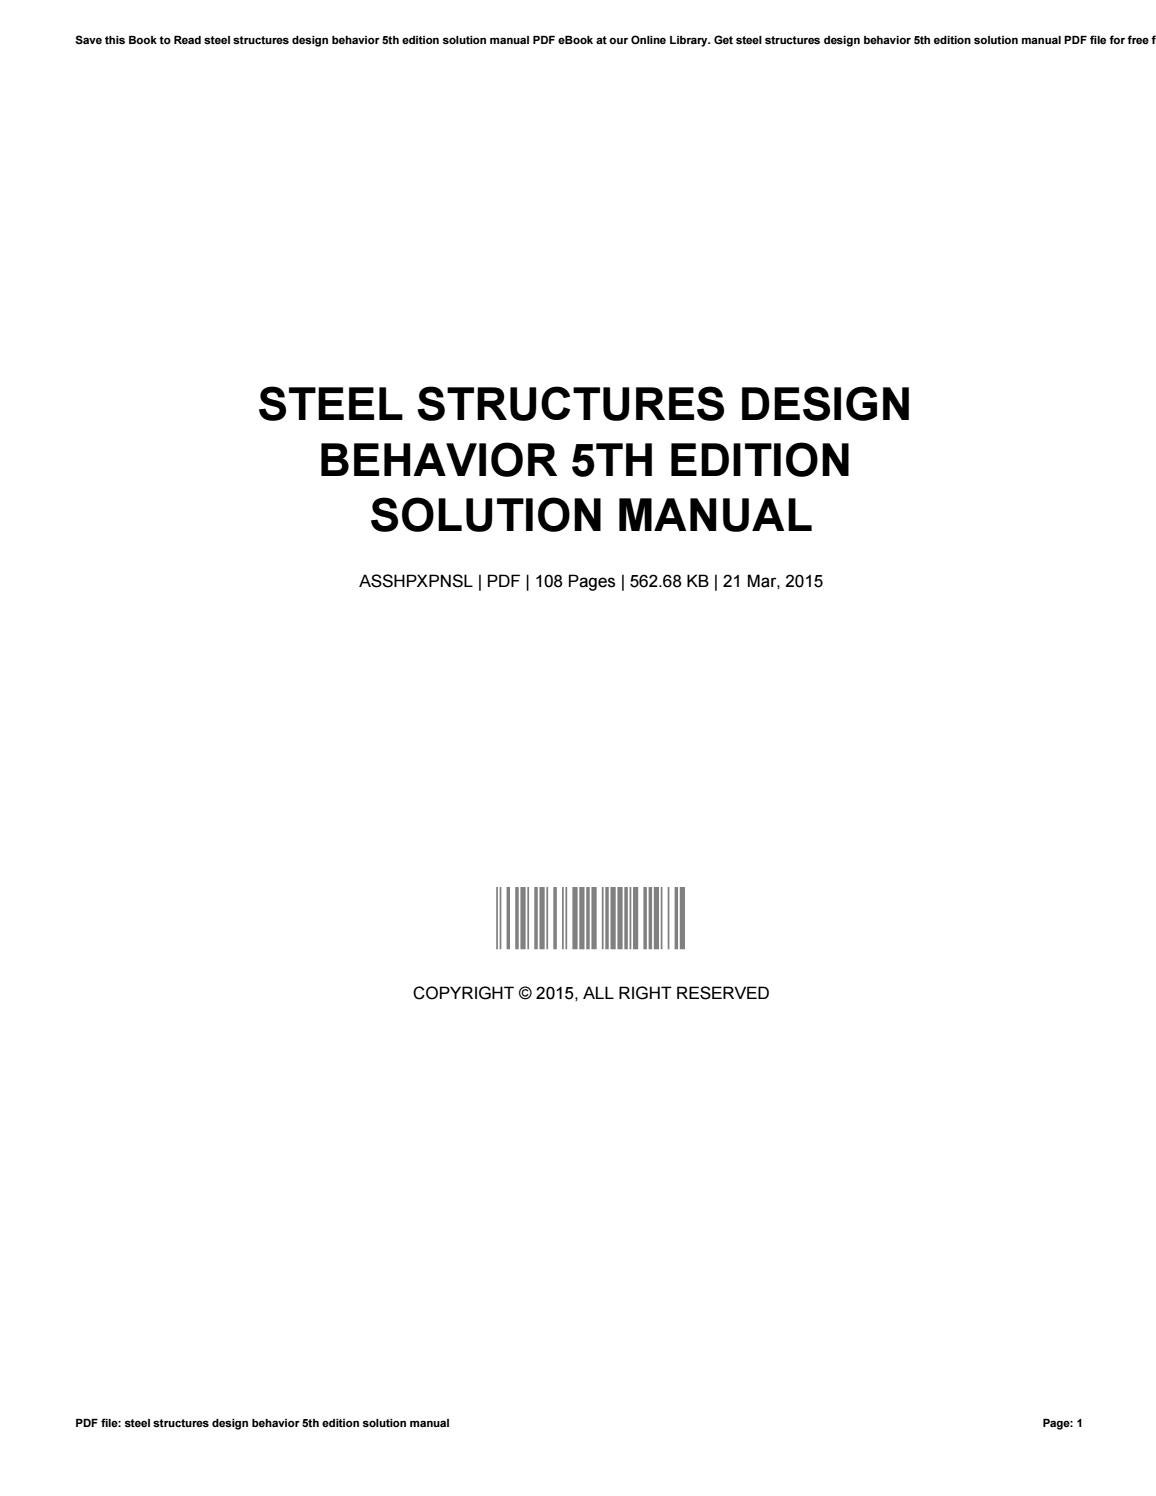 Steel structures design behavior 5th edition solution manual by  JustinLynch4955 - issuu